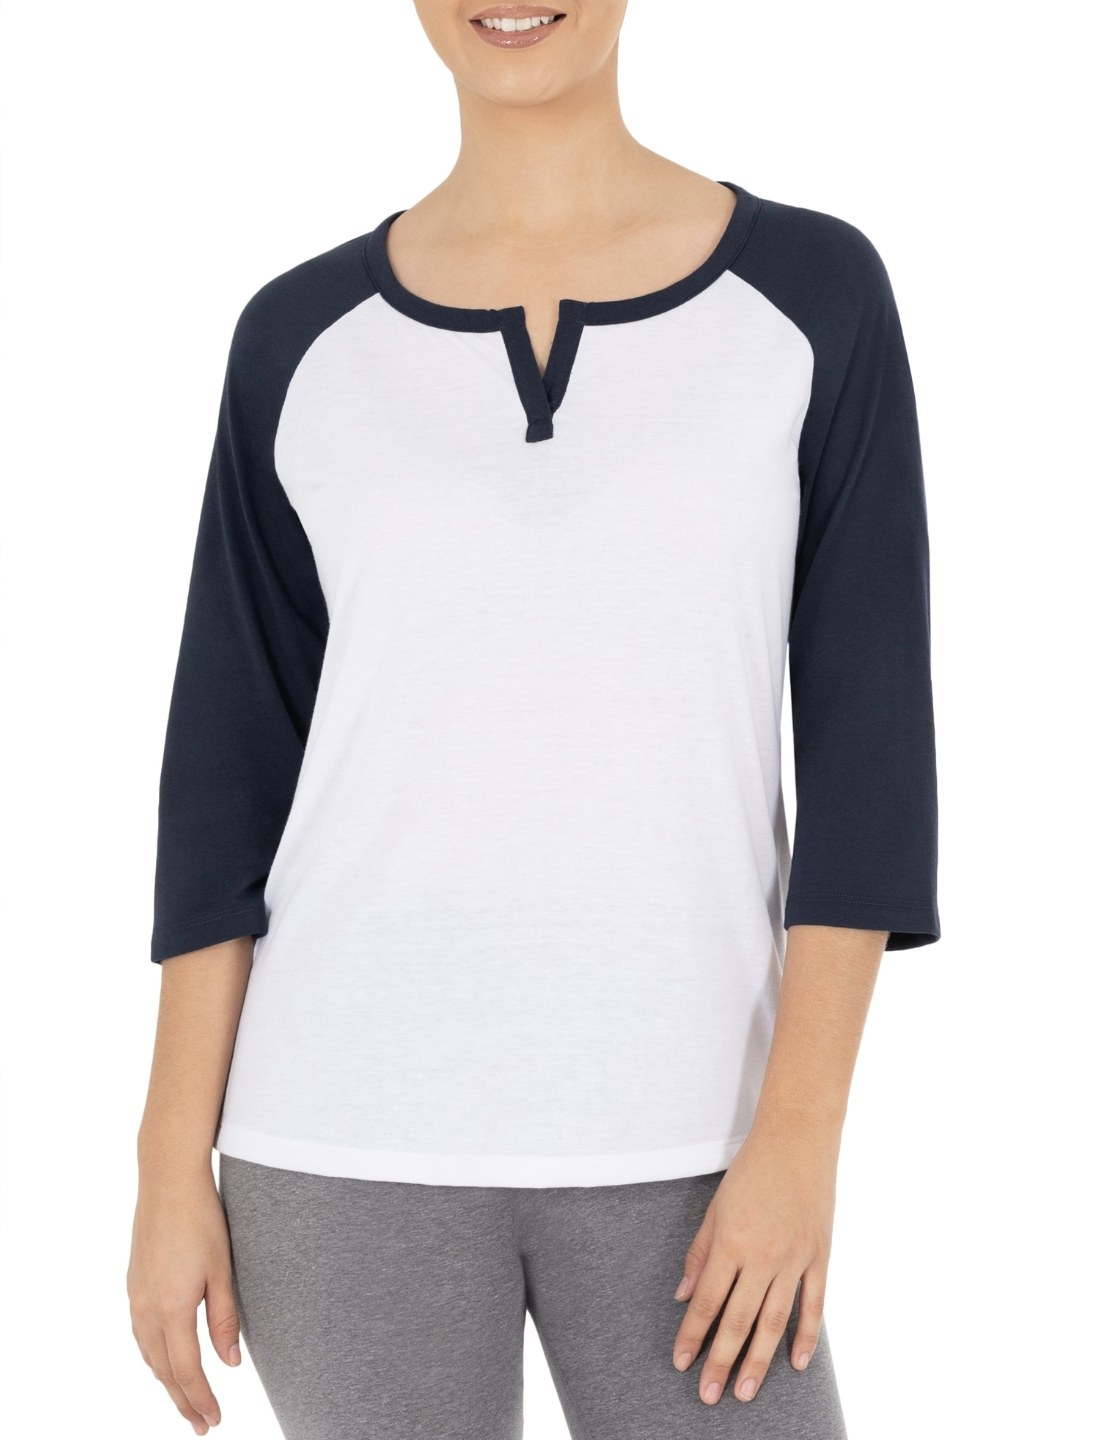 Model in the white quarter-sleeve T-shirt with navy blue sleeves and collar trim